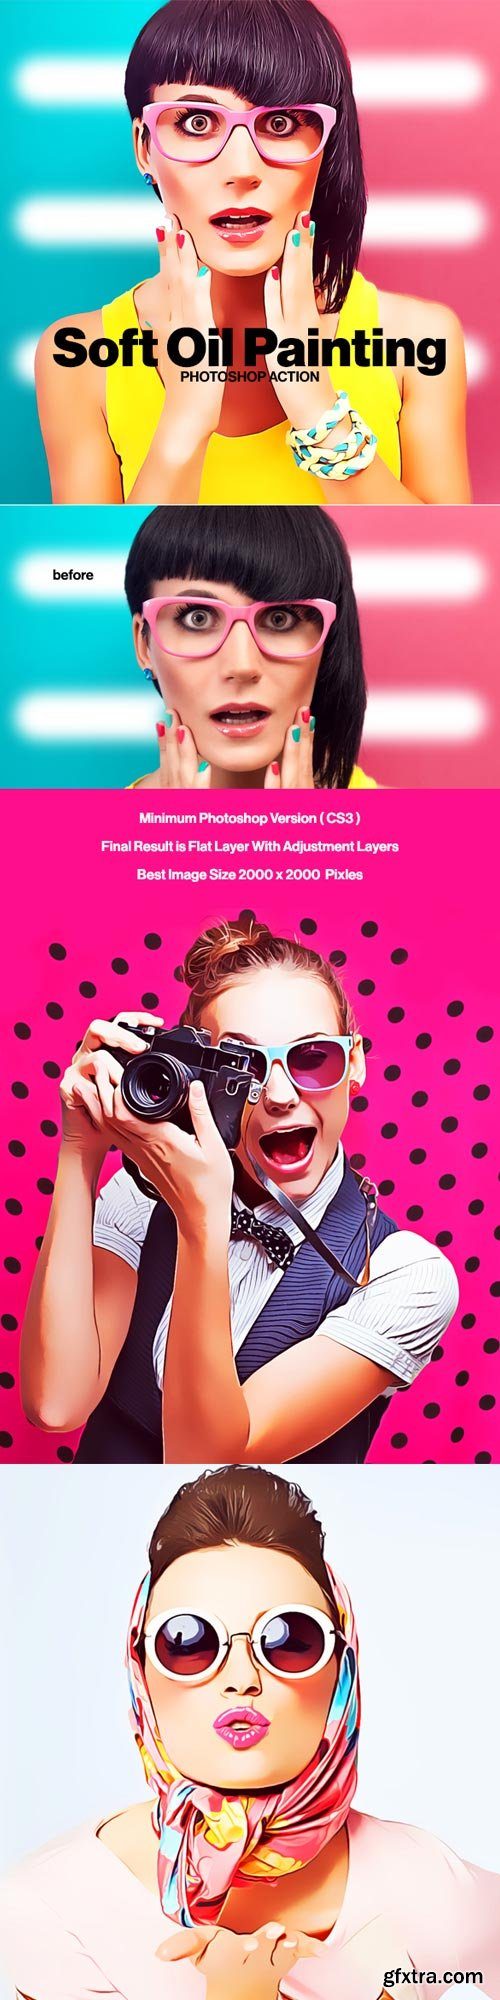 GraphicRiver - Soft Oil Painting Photoshop Action - 22052122